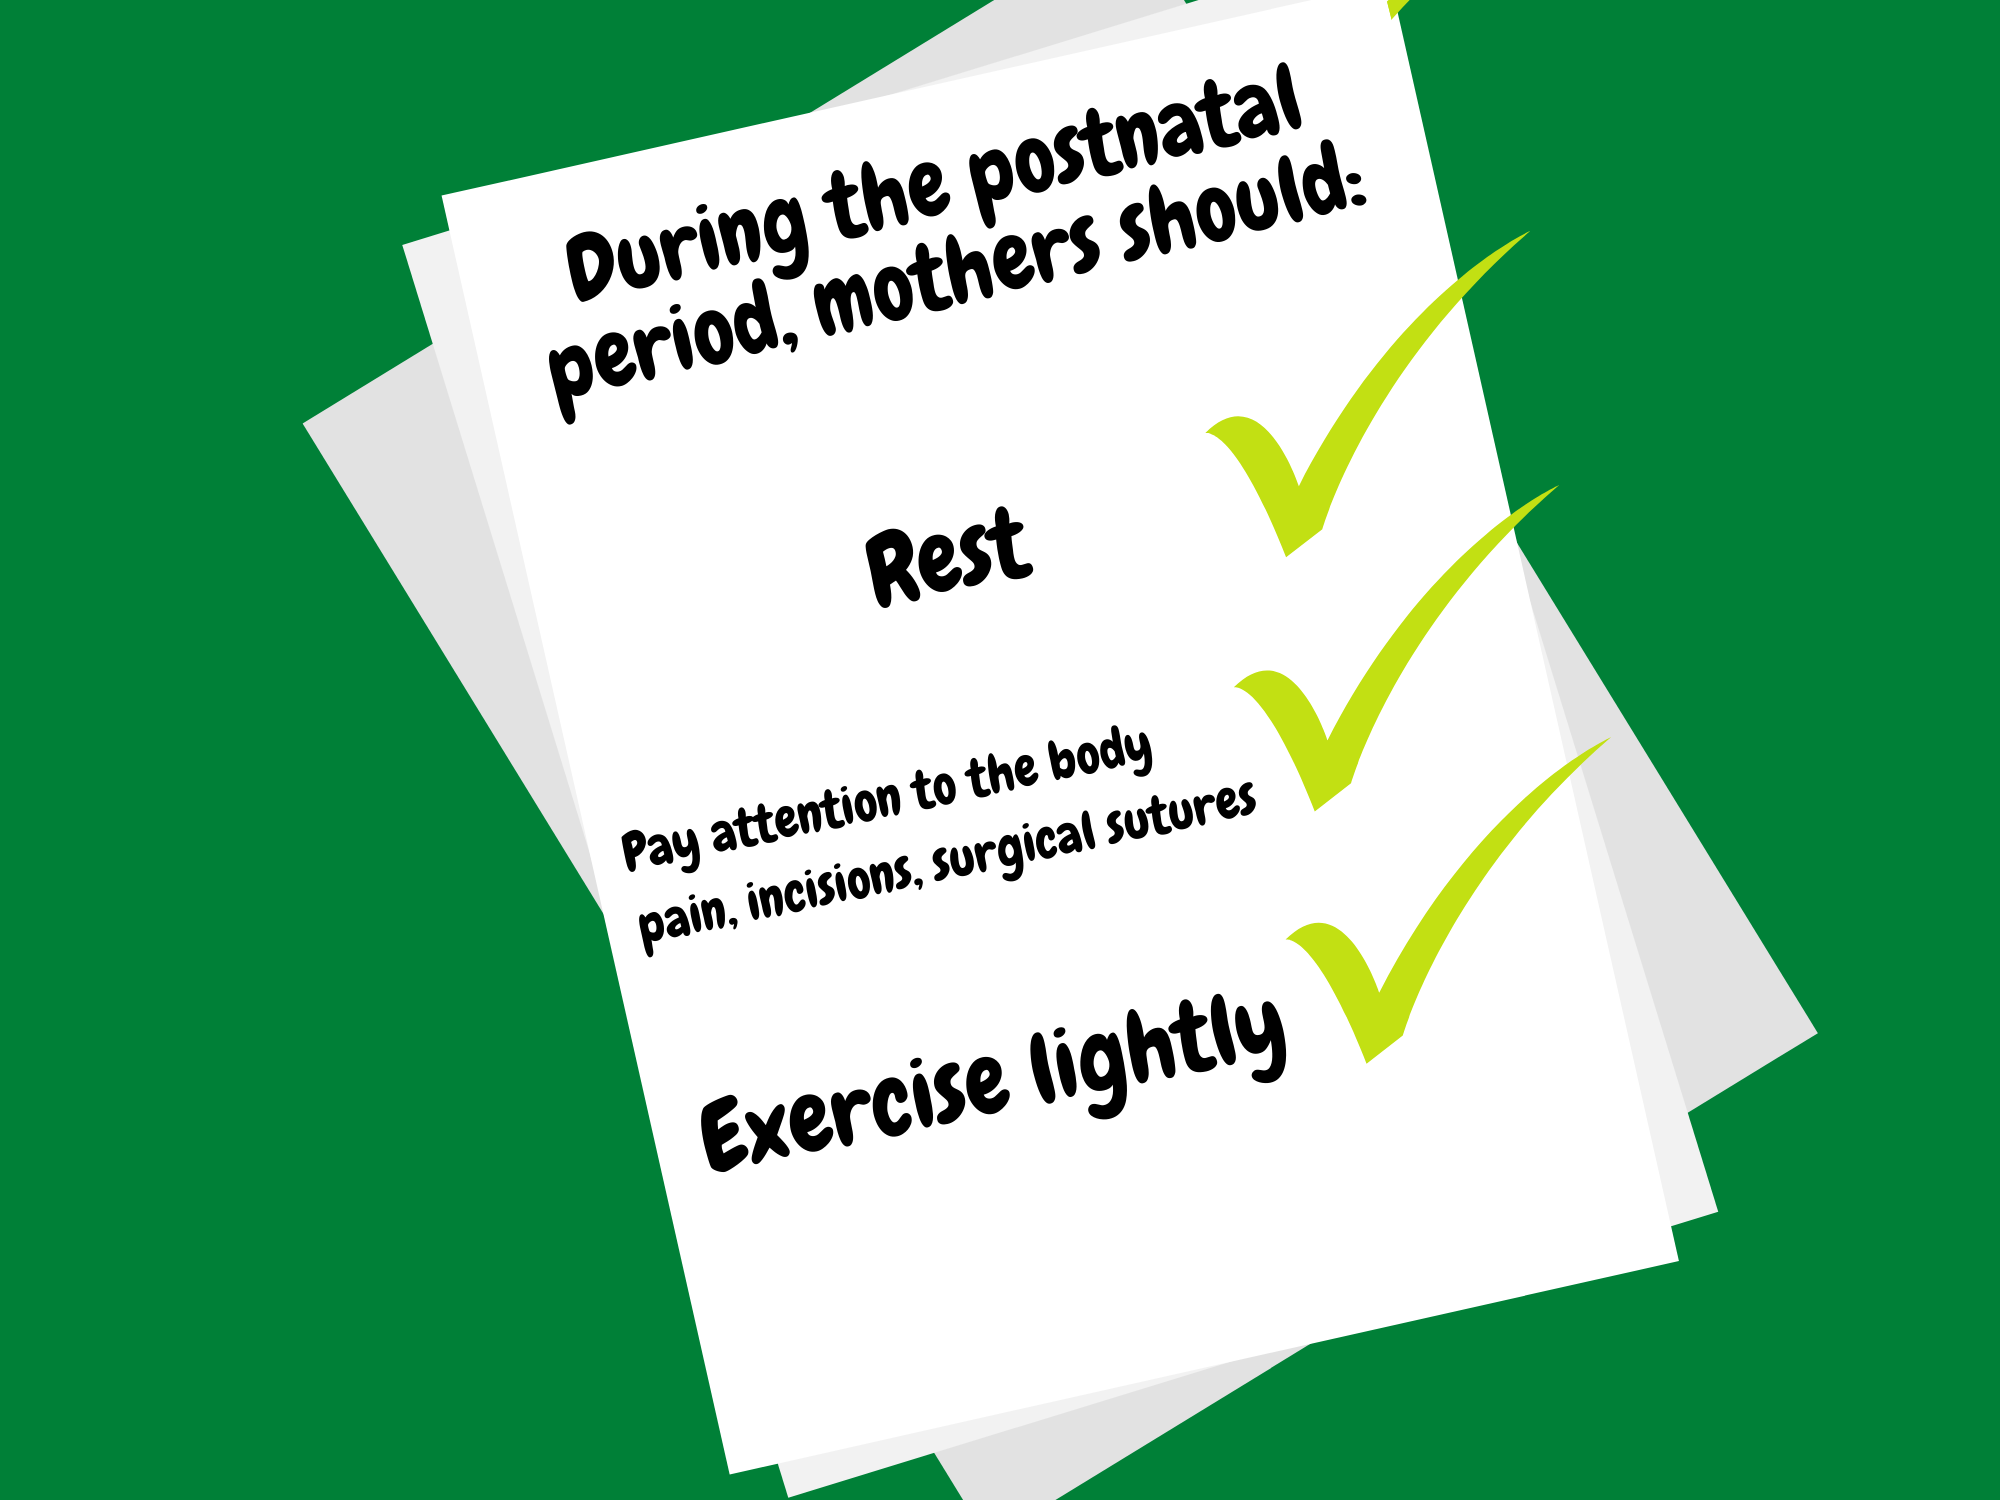 During-the-postnatal-period-mothers-should